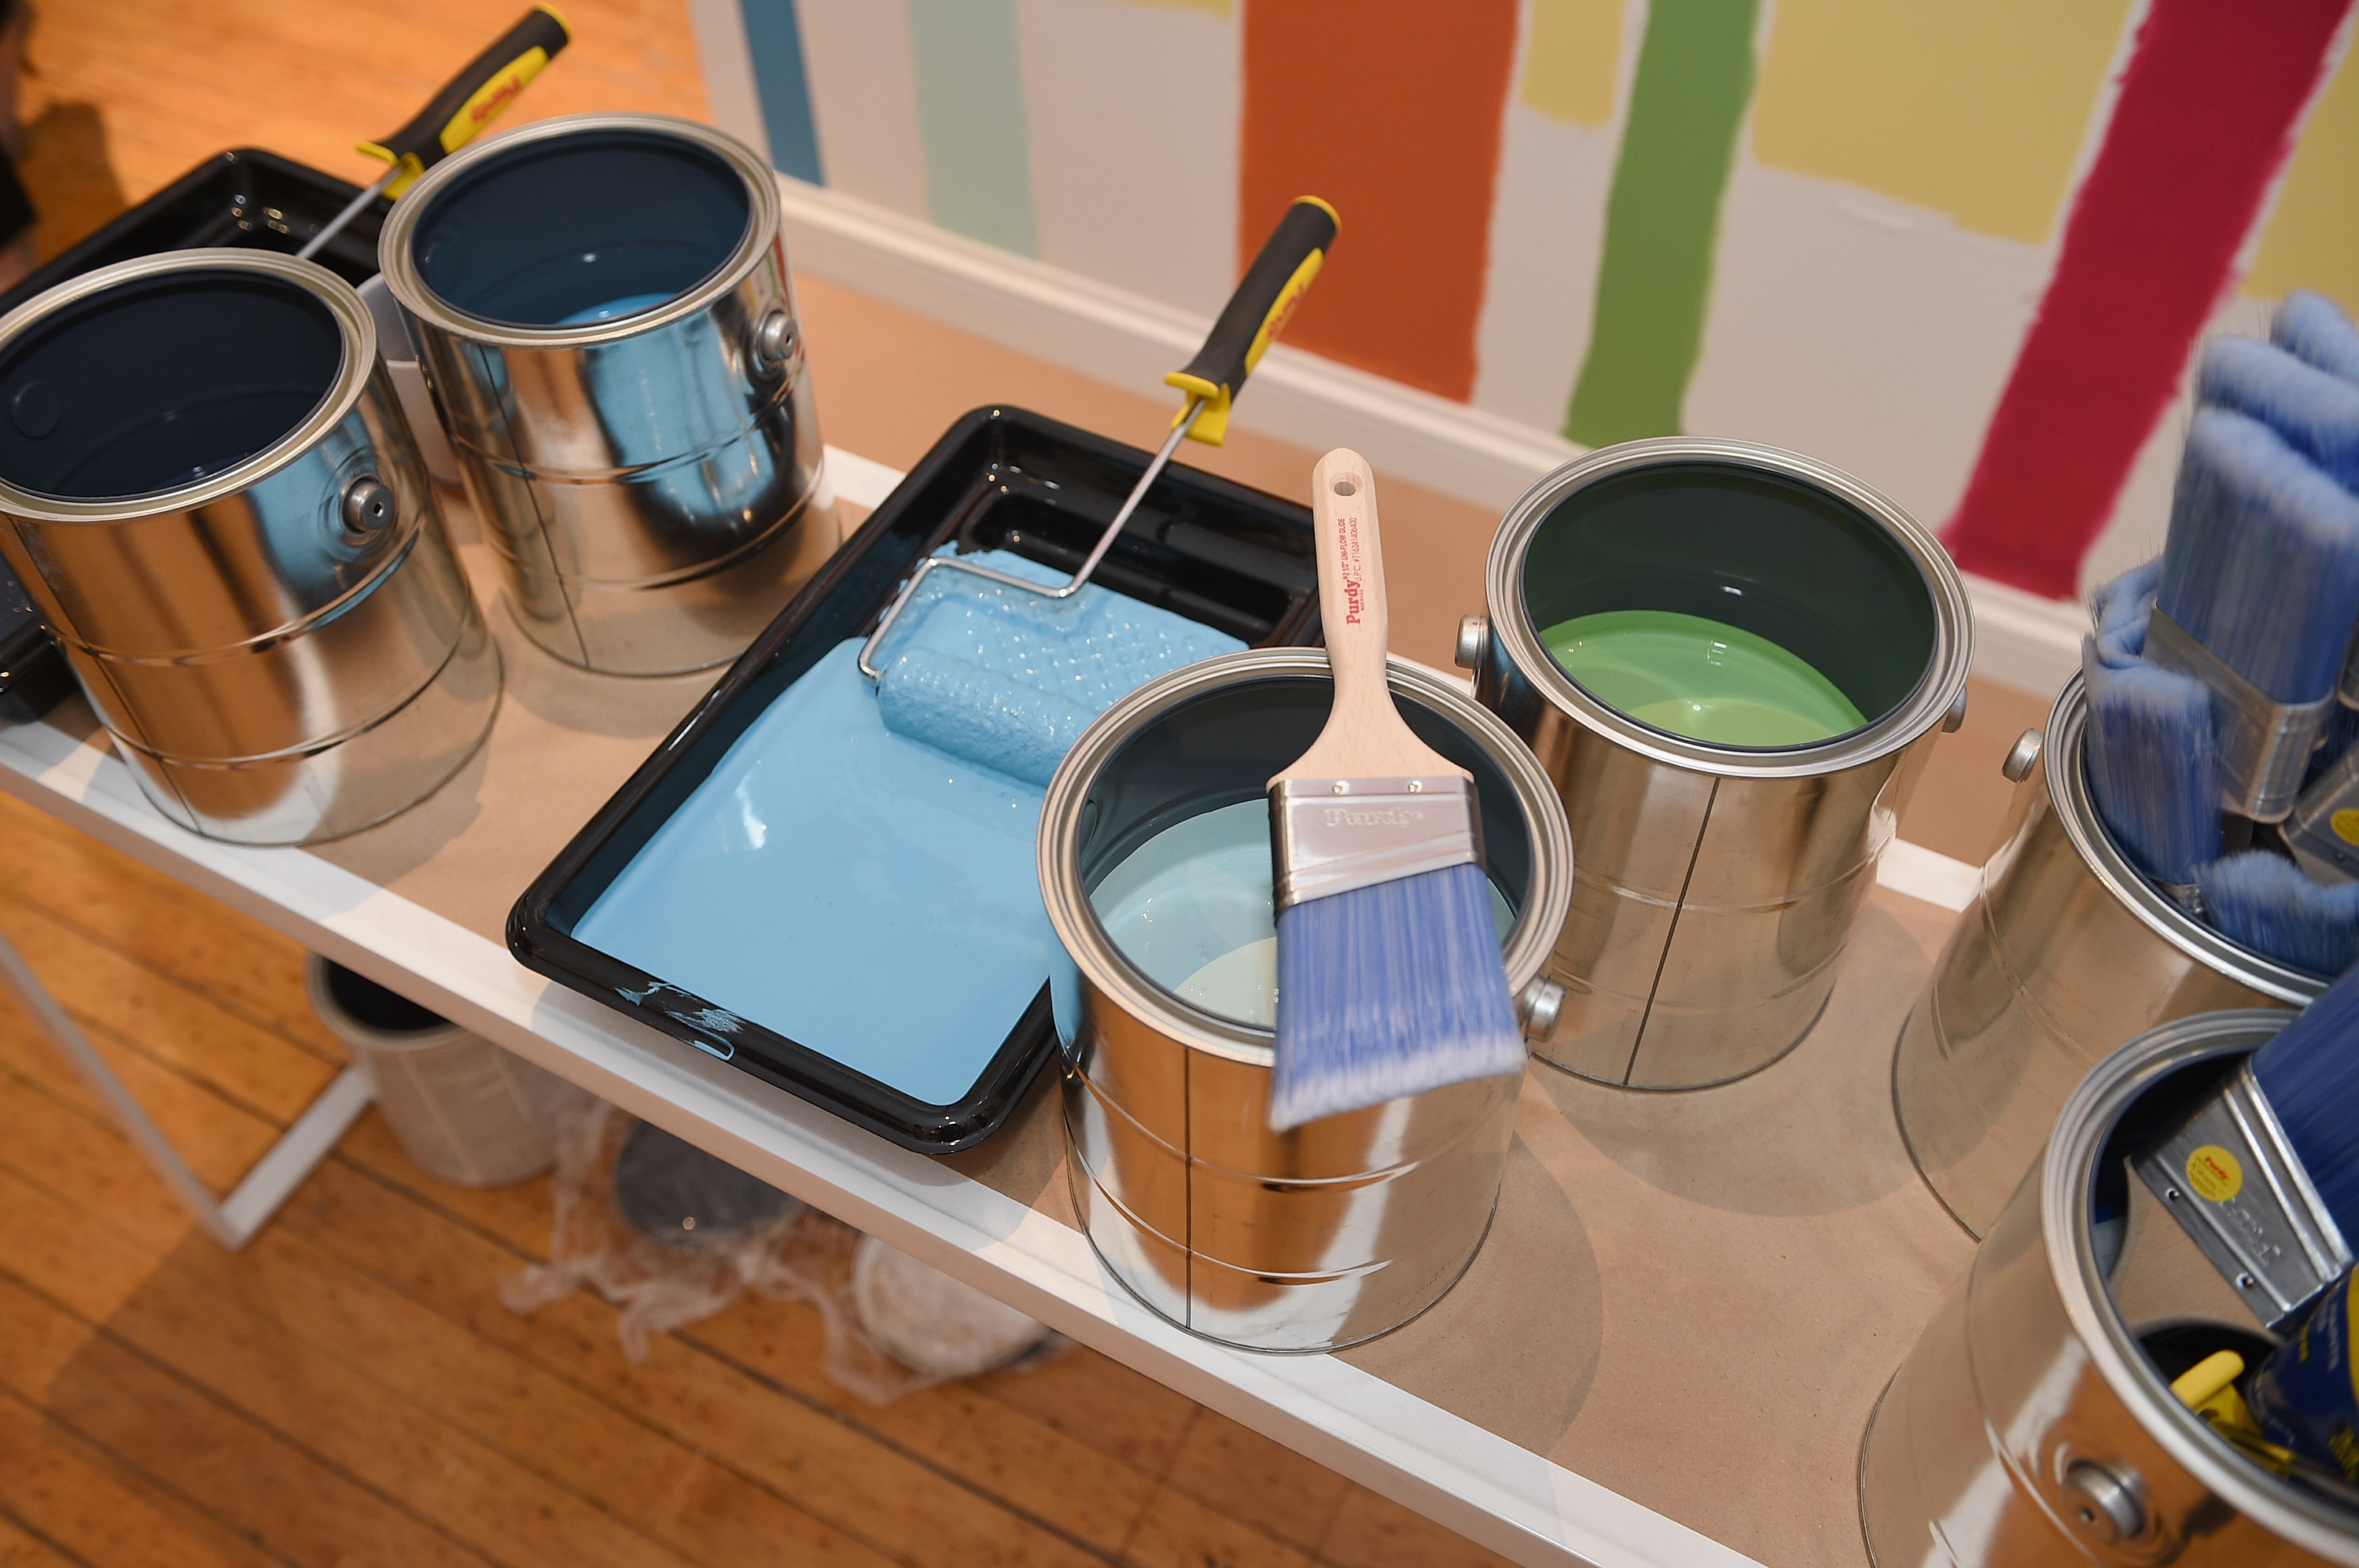 HGTV HOME By Sherwin-Williams And Lowe's NYC Press Event